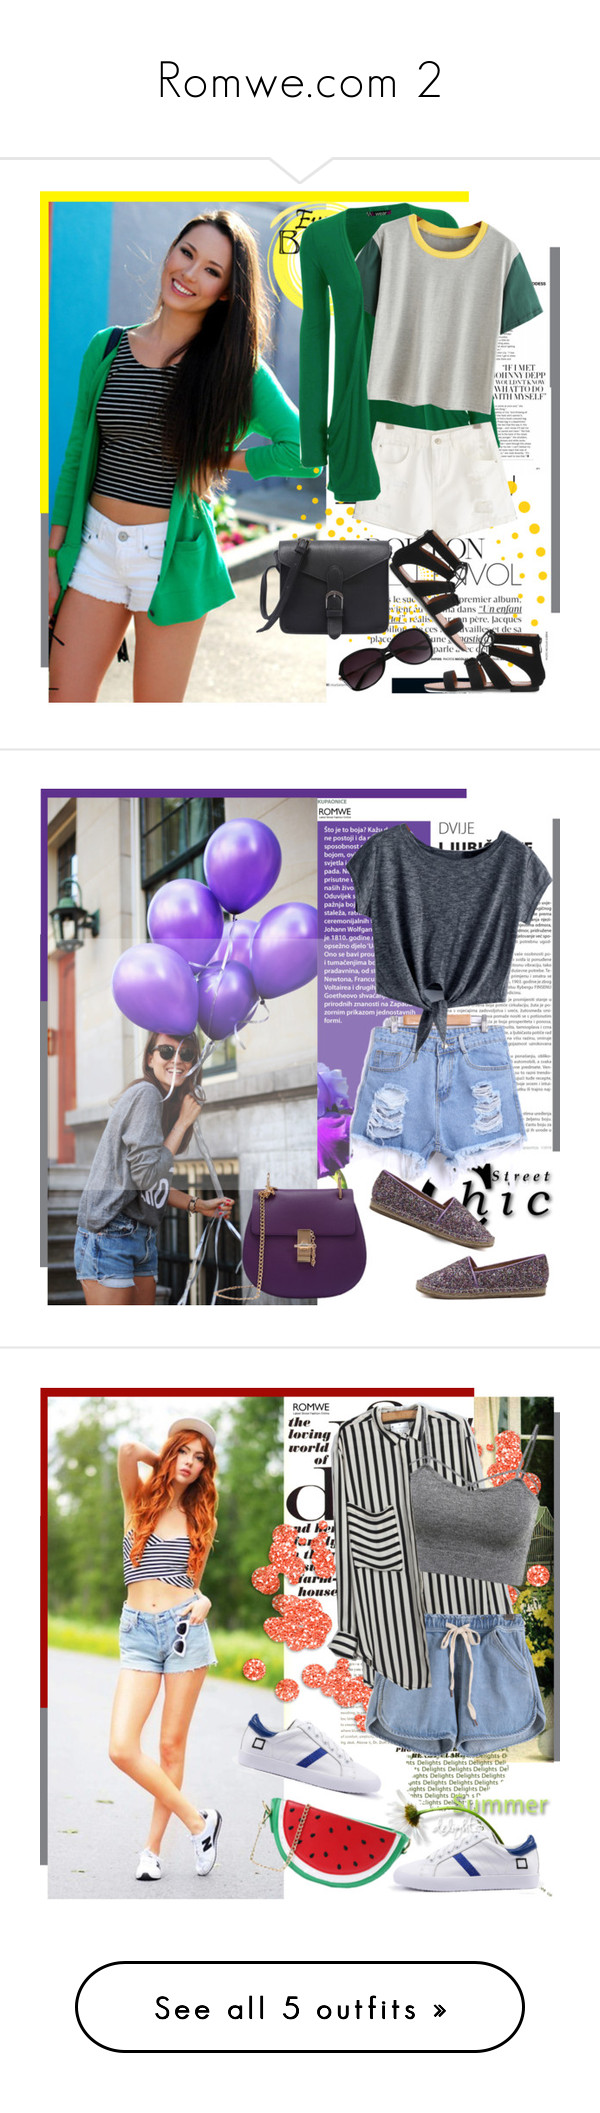 """""""Romwe.com 2"""" by bebushkaj ❤ liked on Polyvore featuring Summer, romwe, collection, WearAll, Rapunzel Of Sweden, Canvas by Lands' End, vintage and Chanel"""